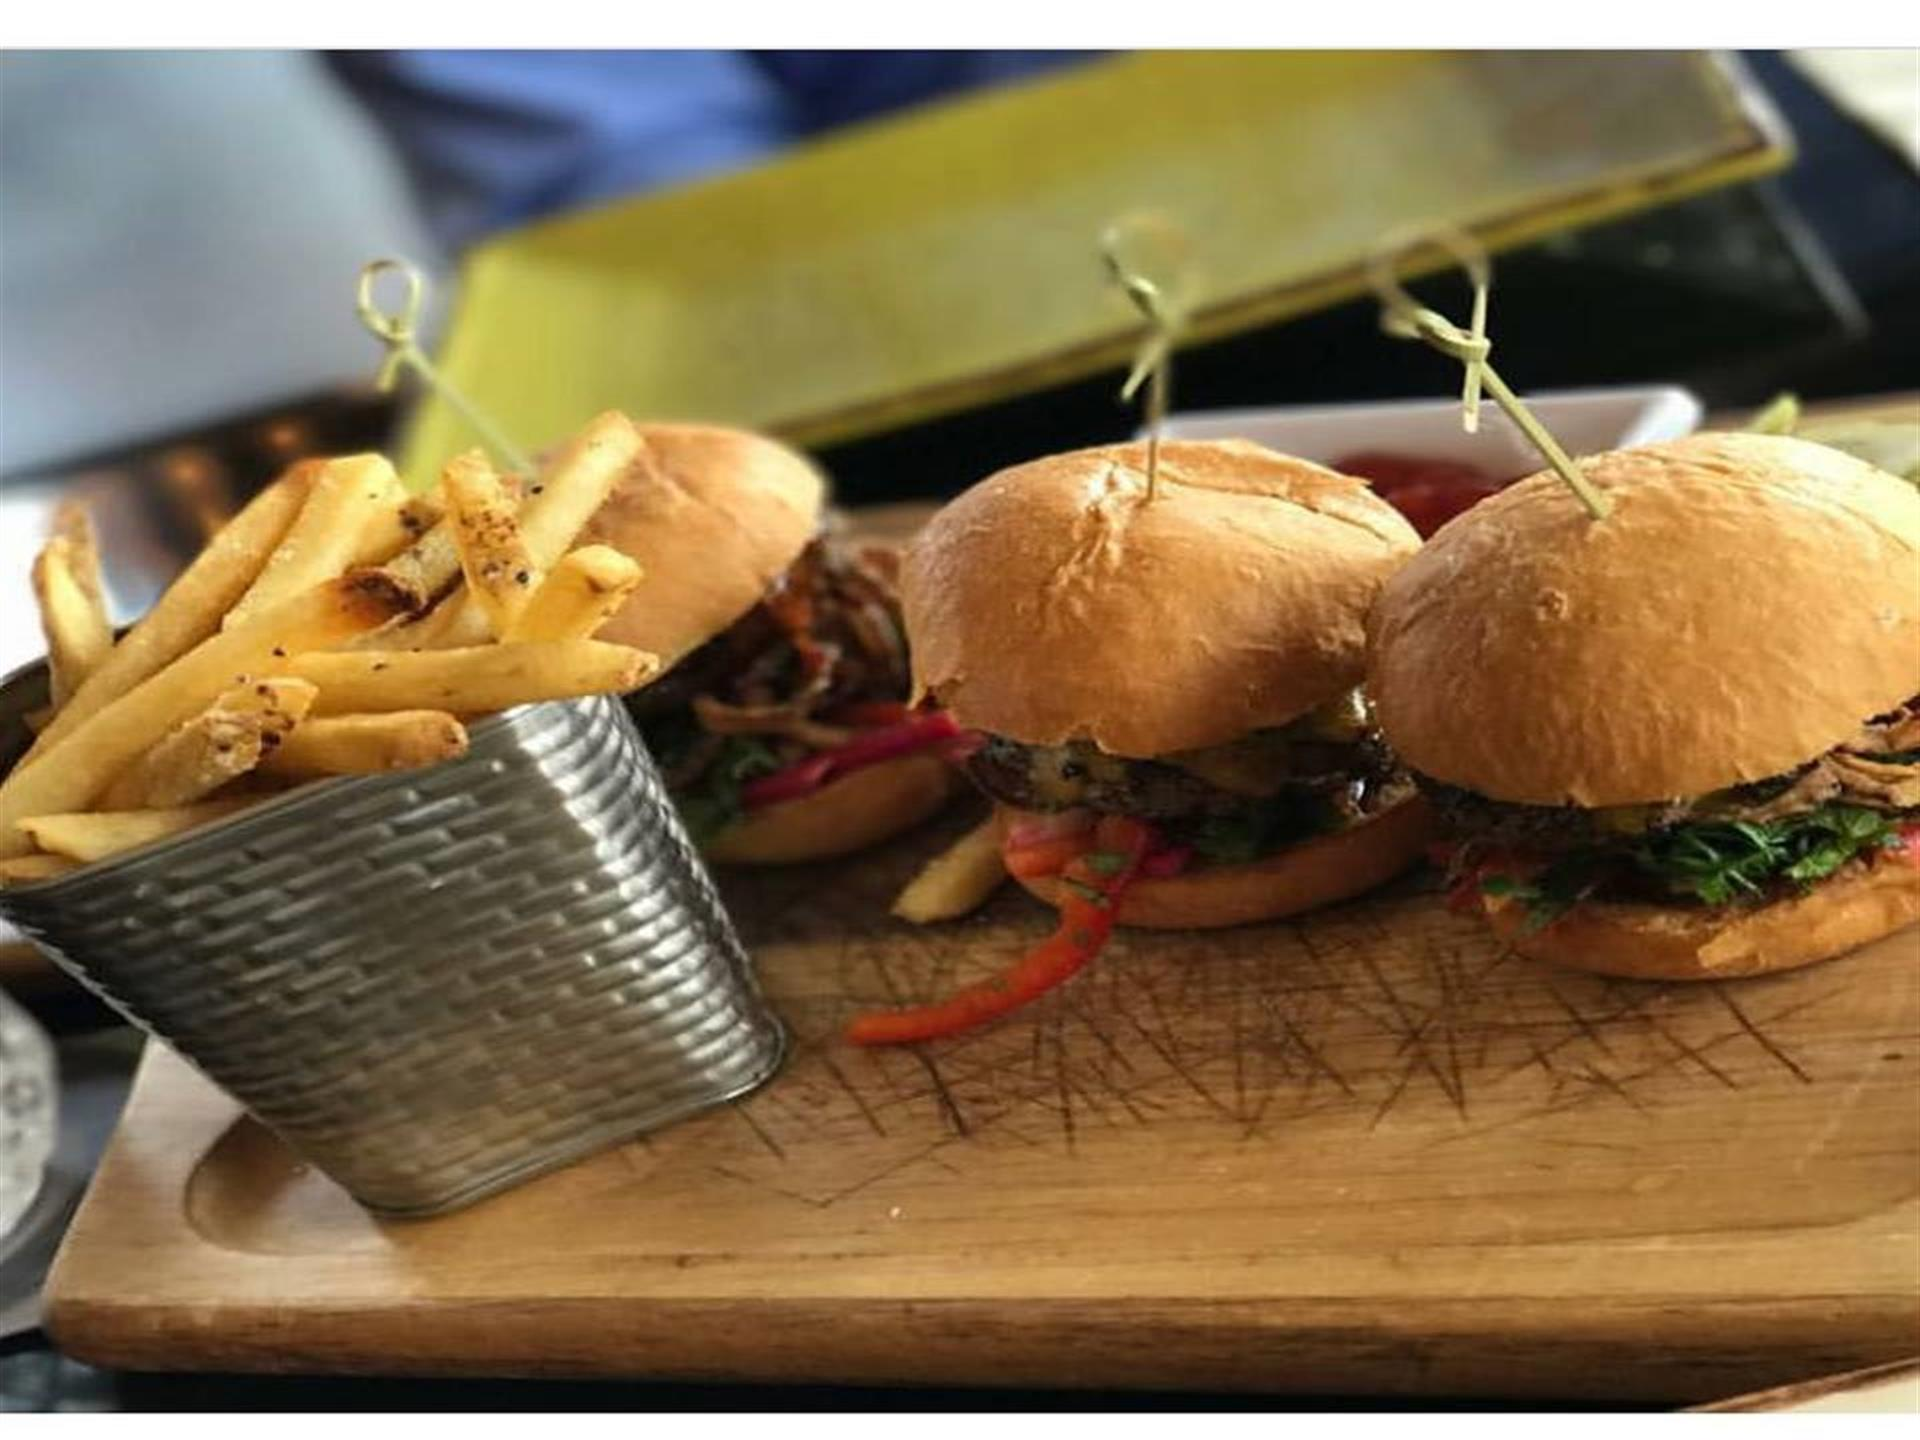 three sliders on a cutting board with french fries